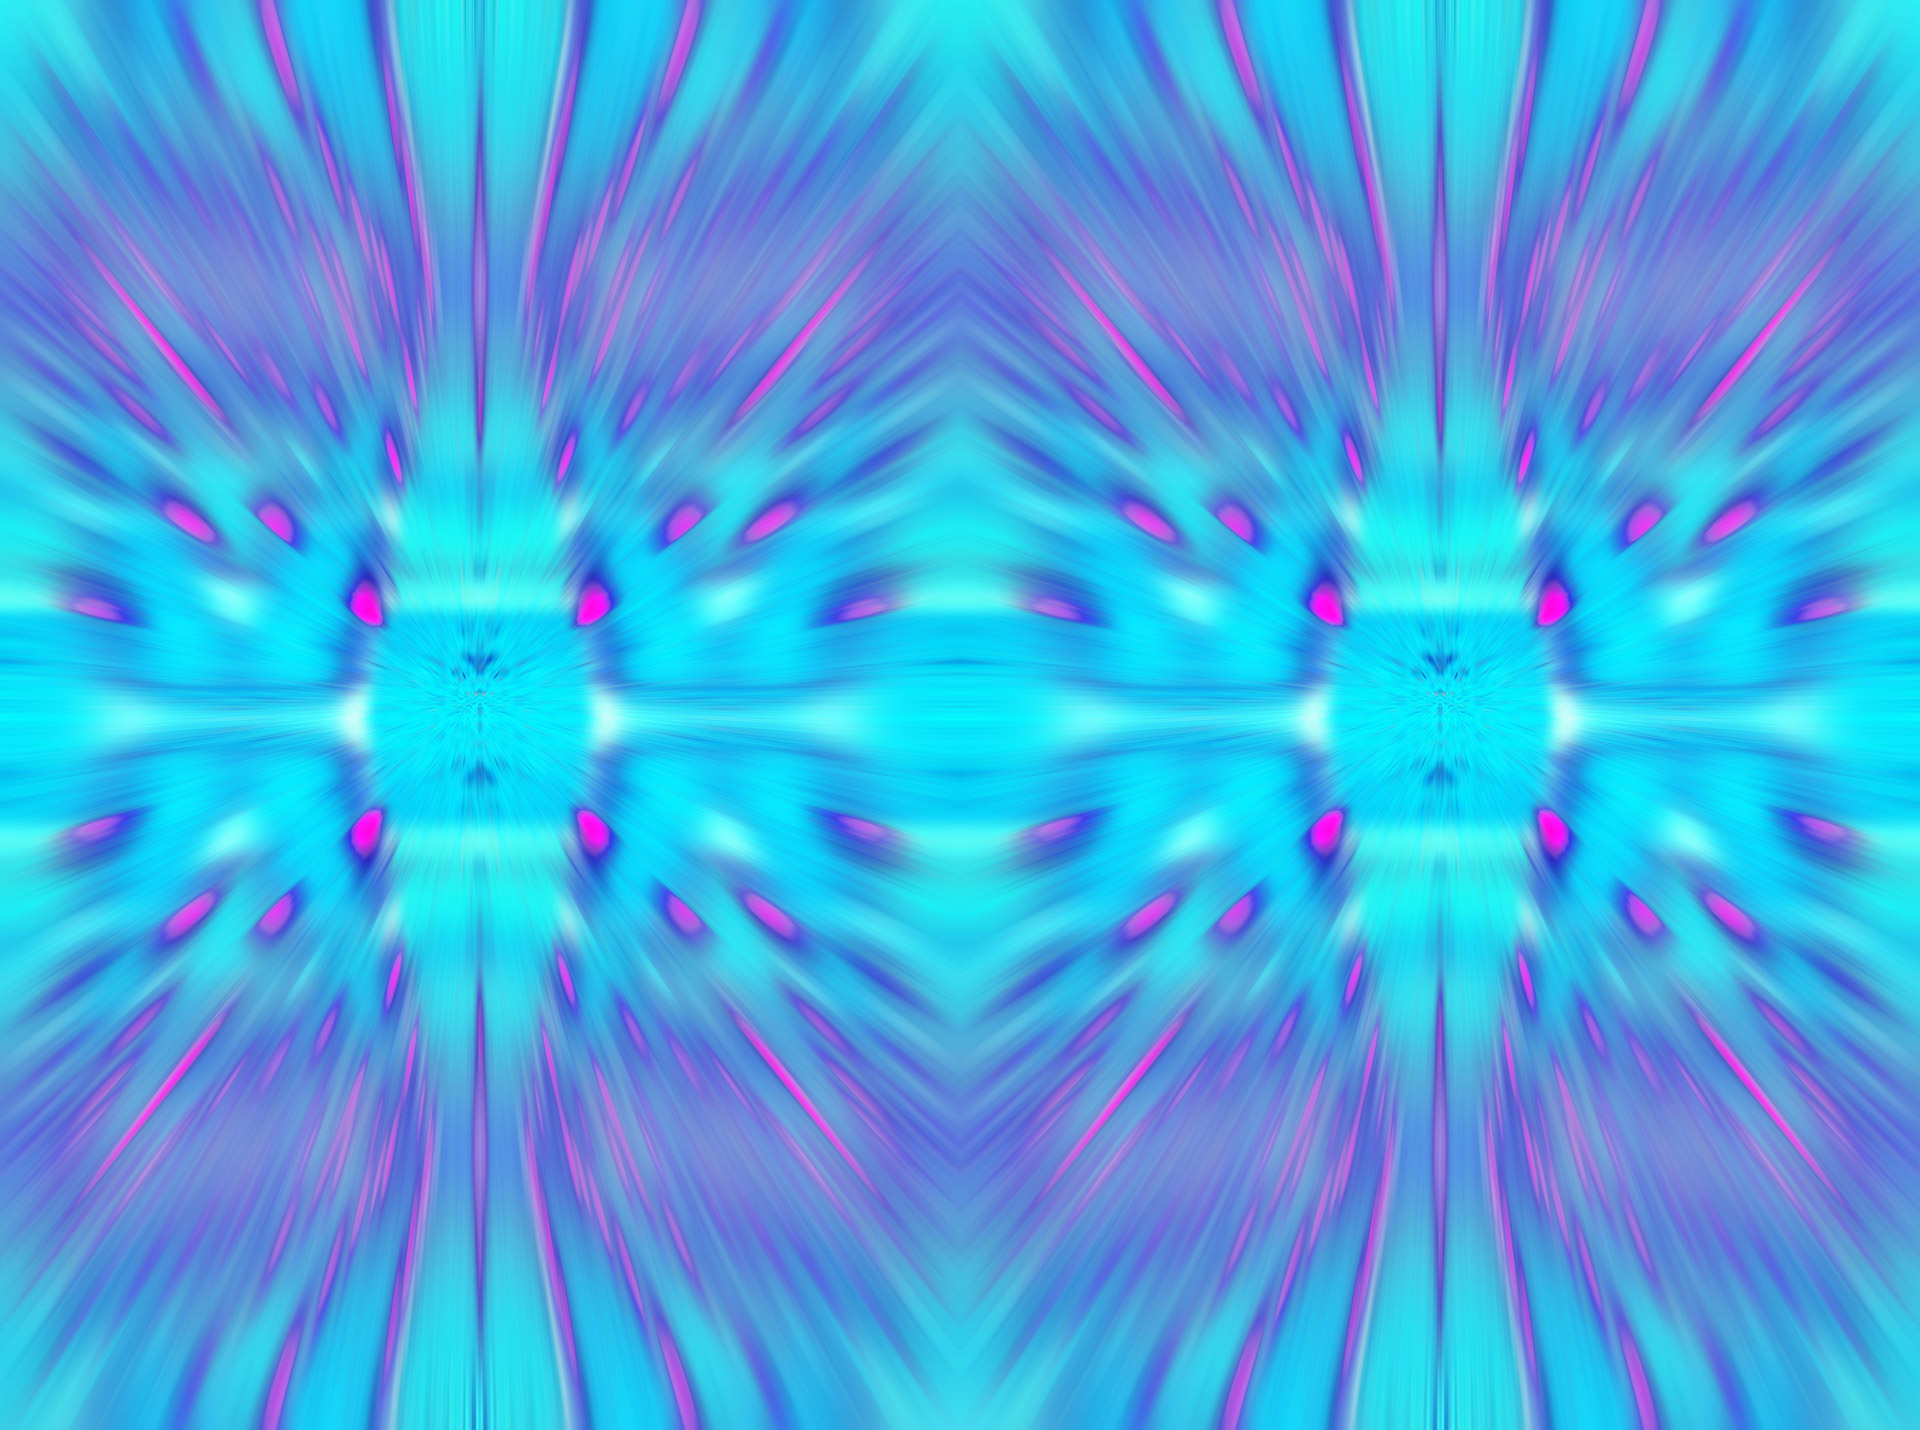 Background Blue Cool Pink Hot Free Image From Needpix Com